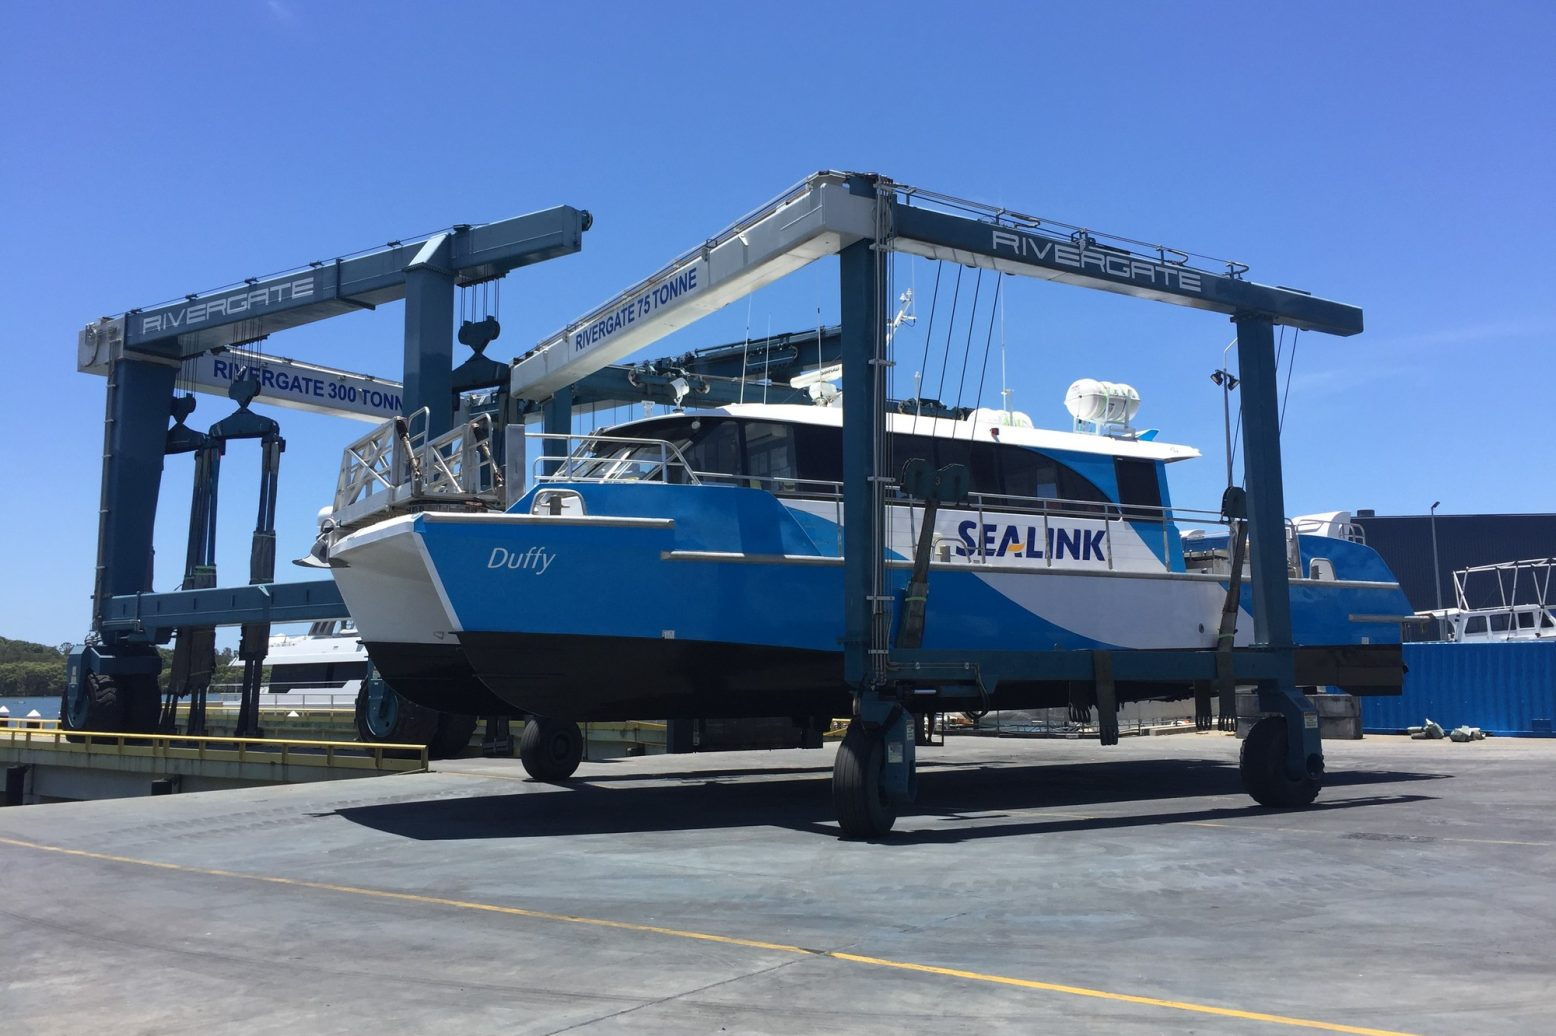 passenger ferry refit travel lift sealink